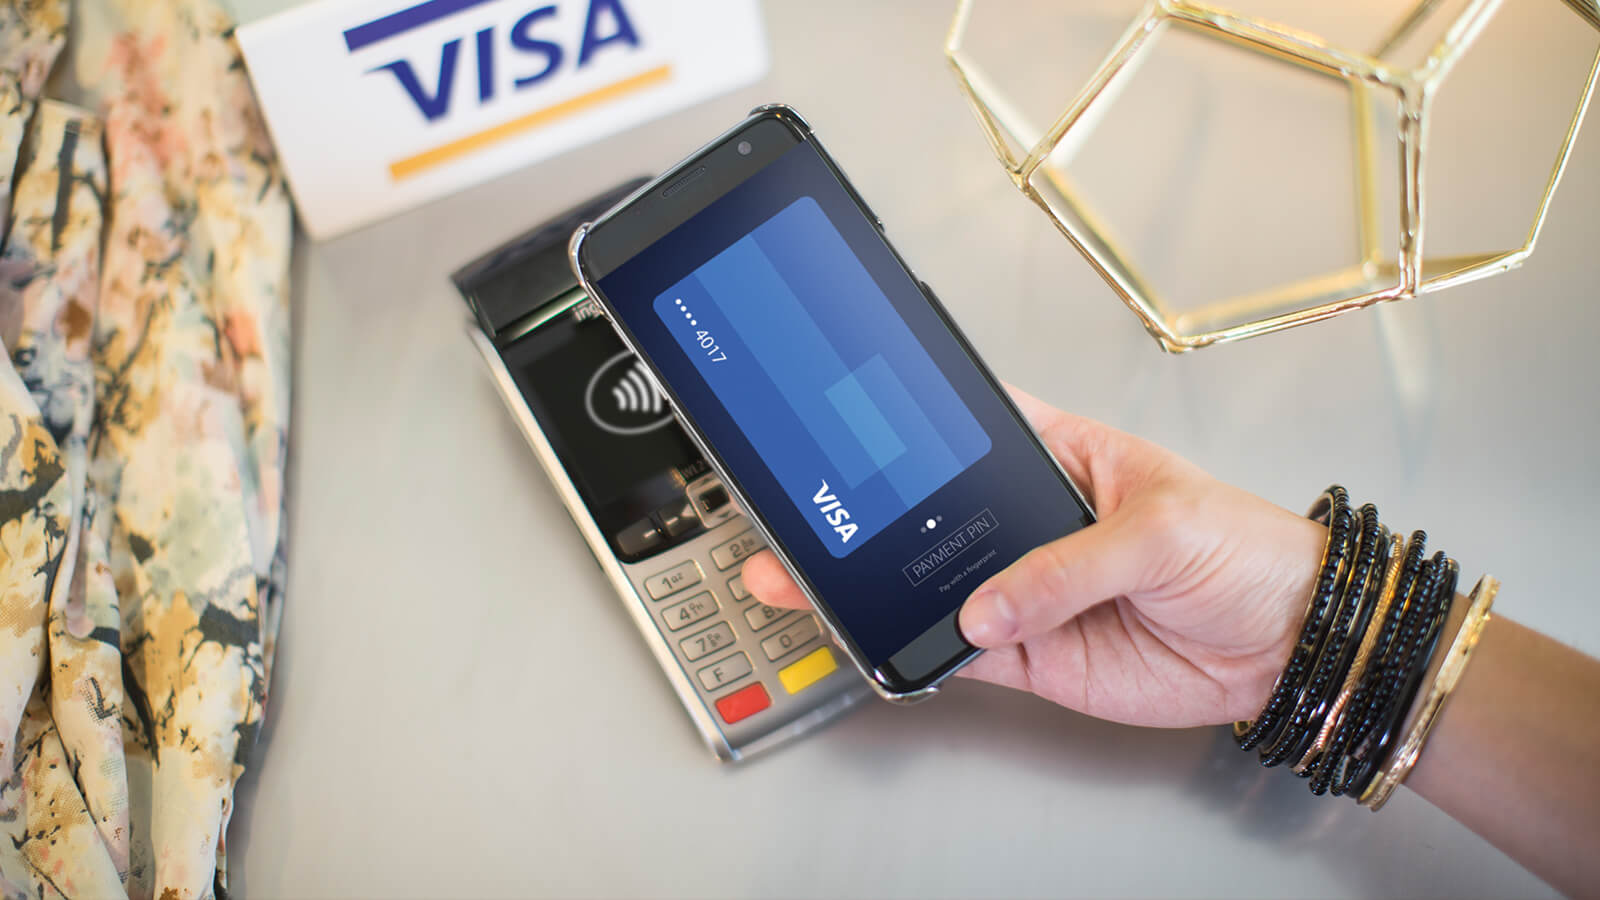 Paying in-store with smartphone contactless payment